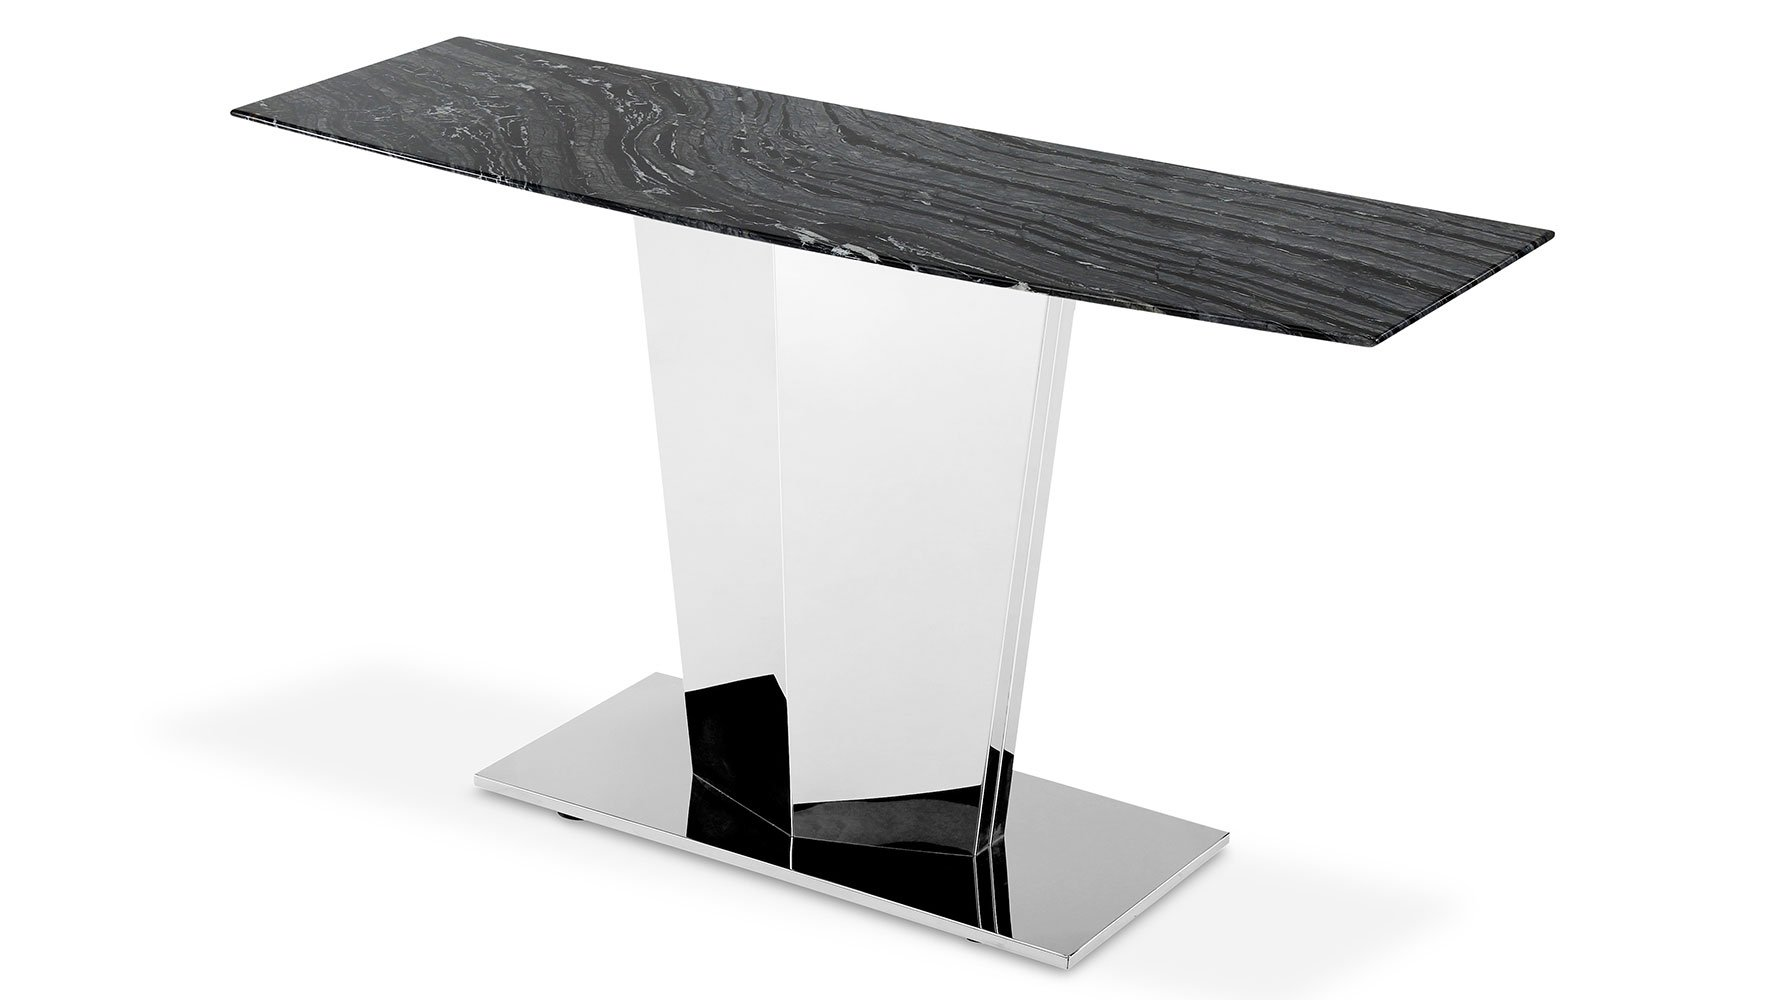 Black modern sofa table Drawers Coffee Tables Living Room Tables Modern Console Tables Zuri Furniture Furniture Design Coffee Tables Living Room Tables Modern Console Tables Zuri